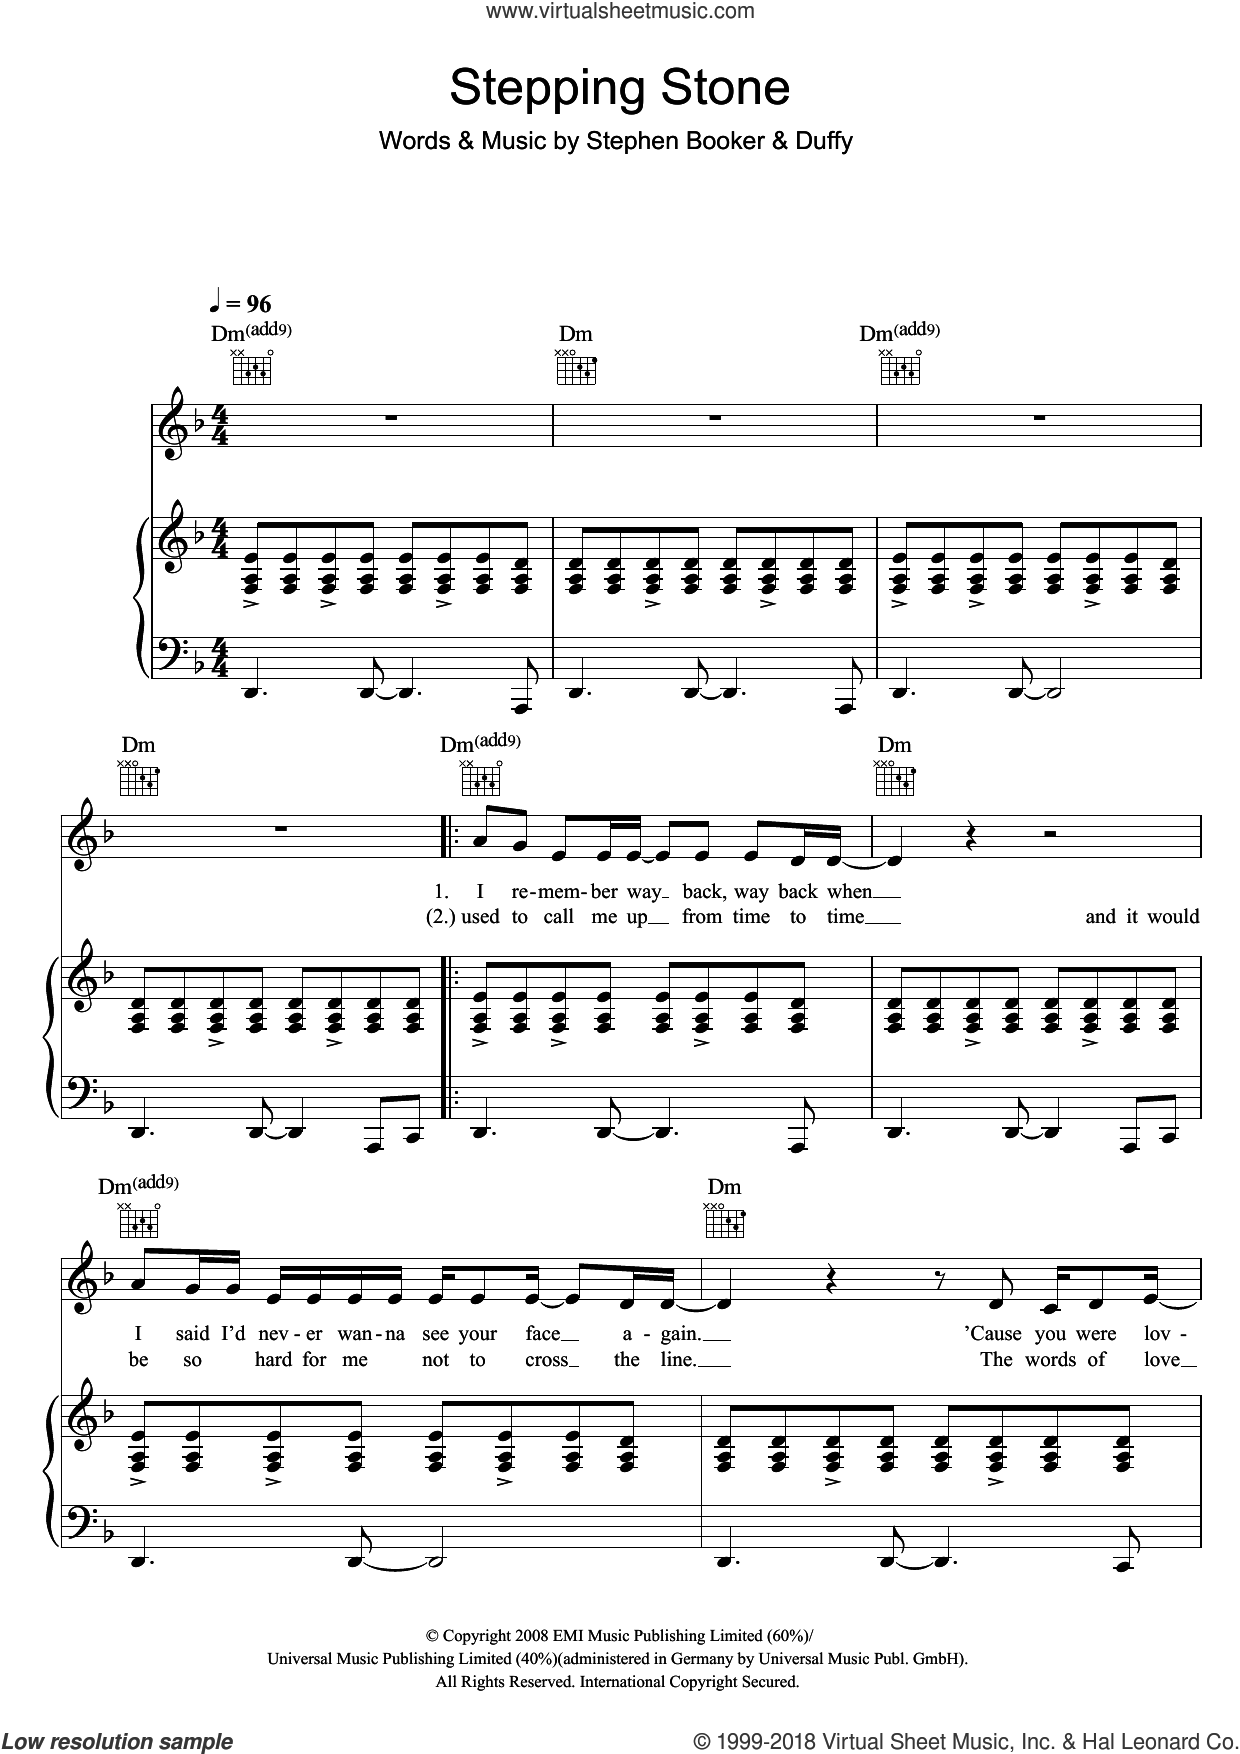 Stepping Stone sheet music for voice, piano or guitar by Duffy and Steve Booker, intermediate skill level